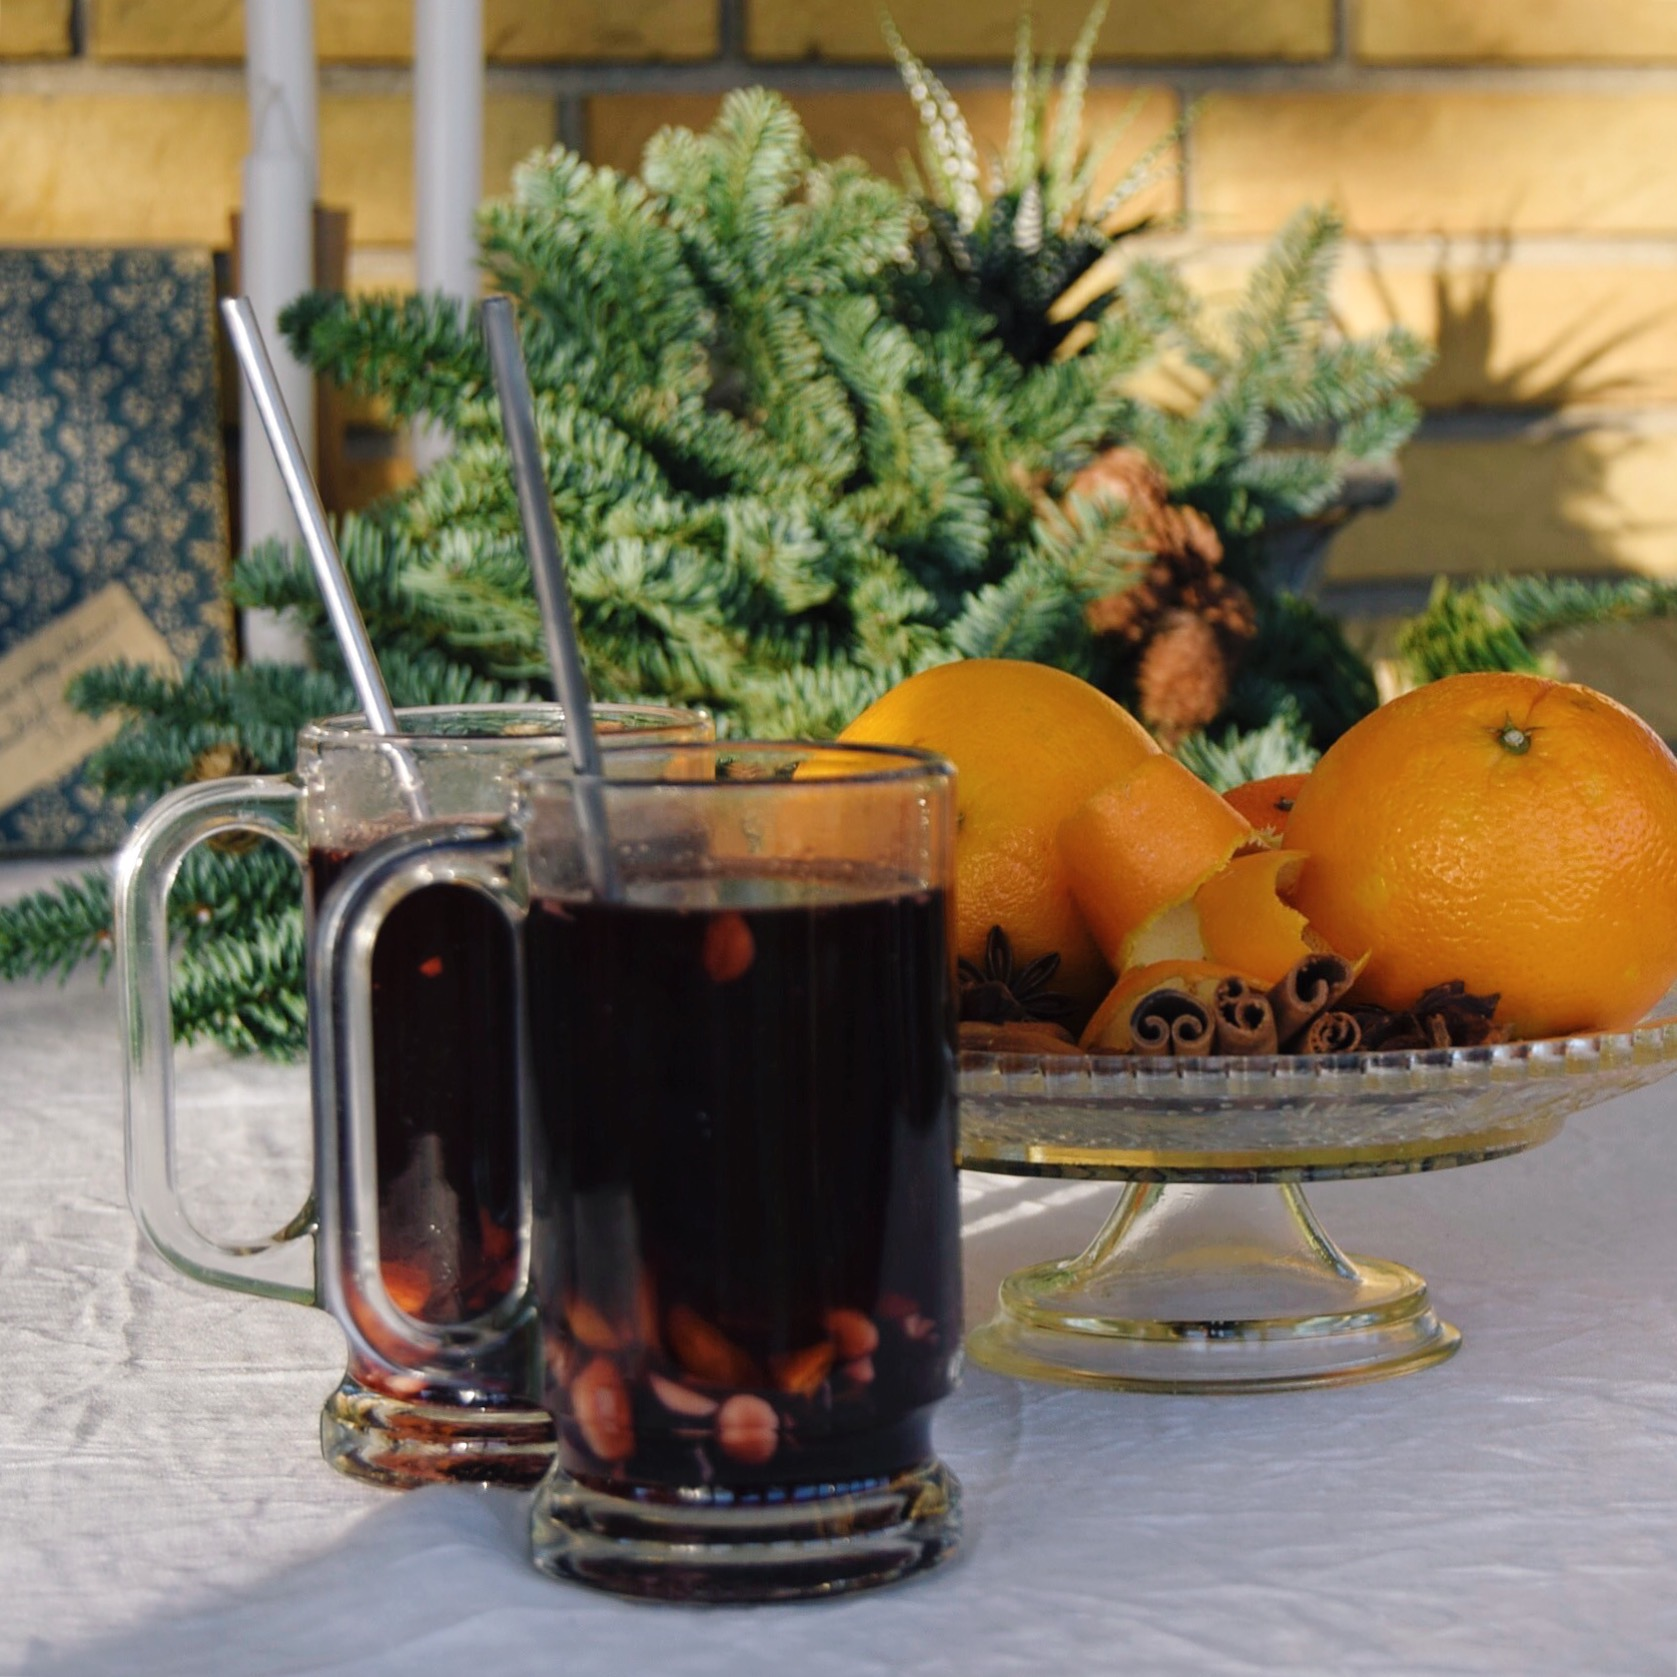 Homemade mulled wine for that Danish Christmas hygge.